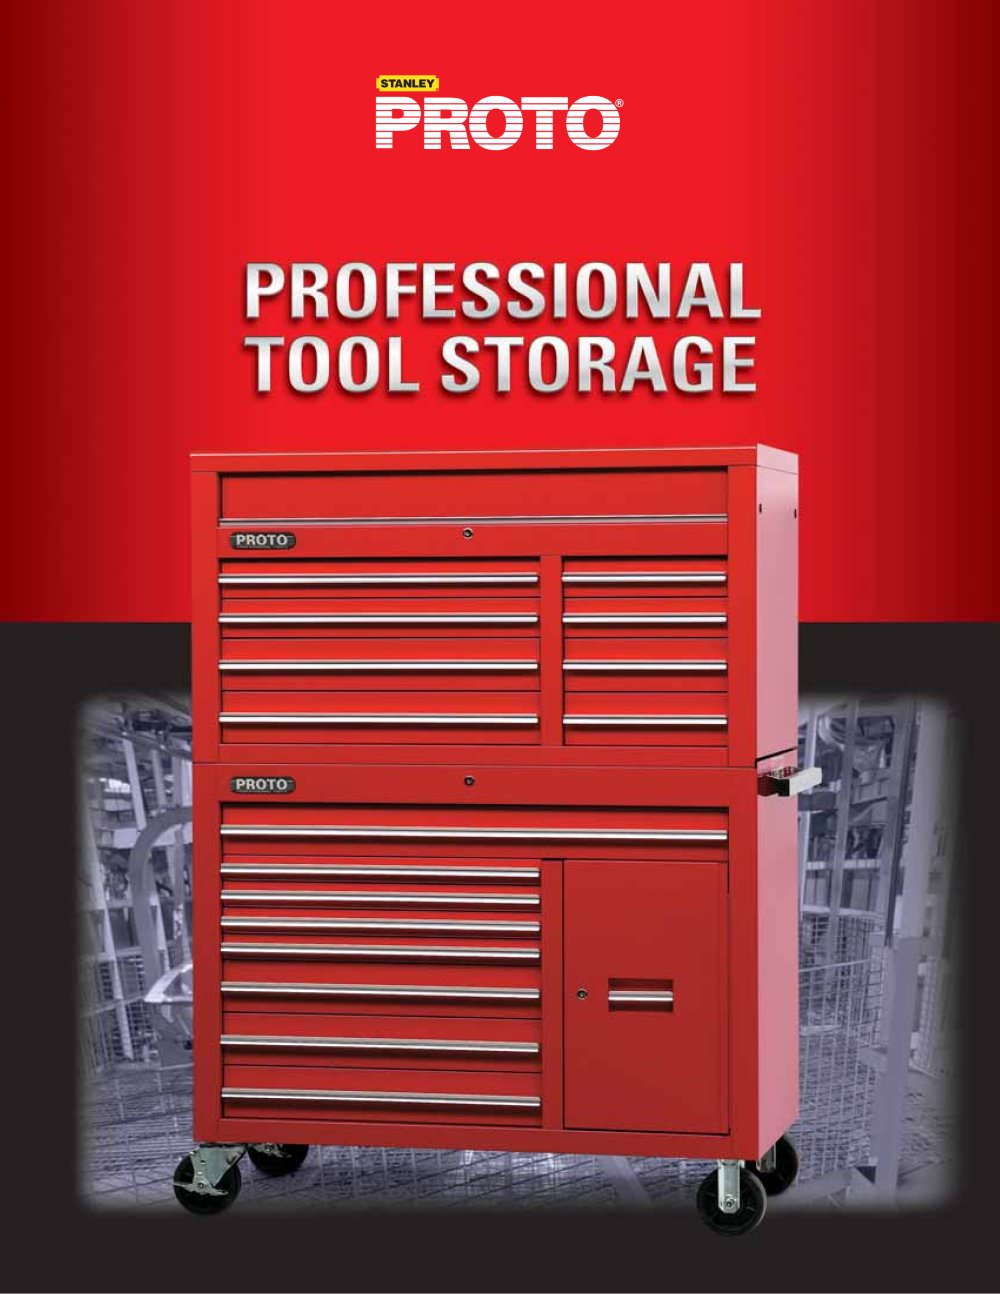 Proto® Professional Tool Storage - 1 / 16 Pages  sc 1 st  Catalogues Directindustry & Proto® Professional Tool Storage - PROTO - PDF Catalogue | Technical ...